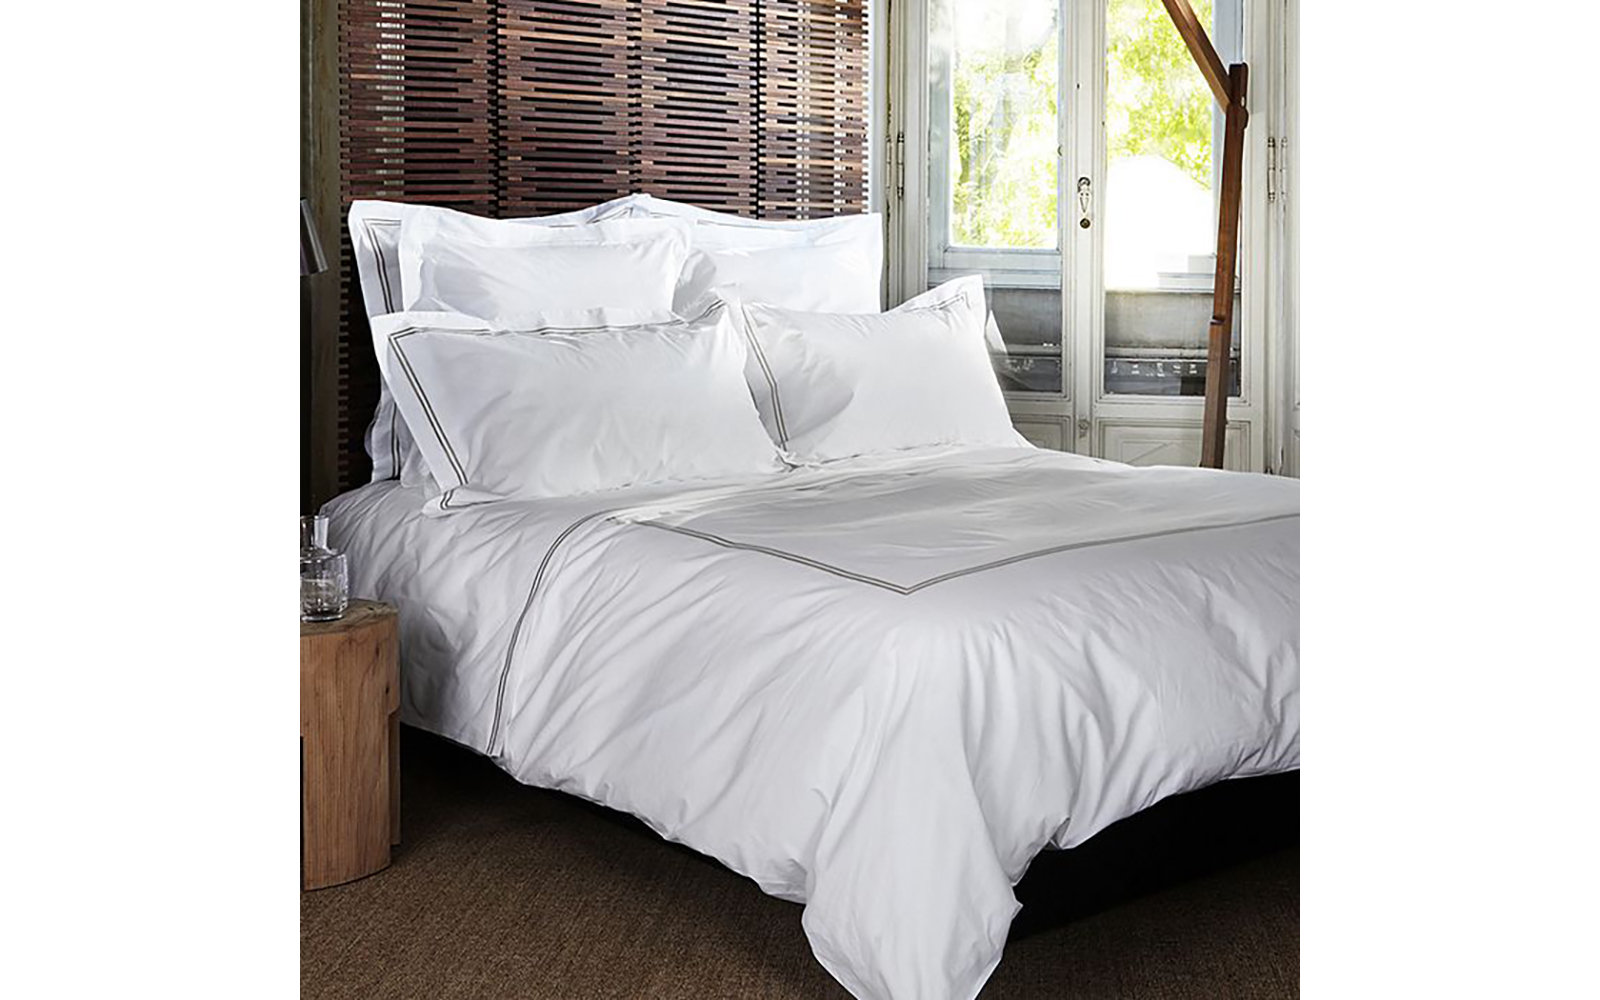 Frette Hotel Classic Collection Sheets